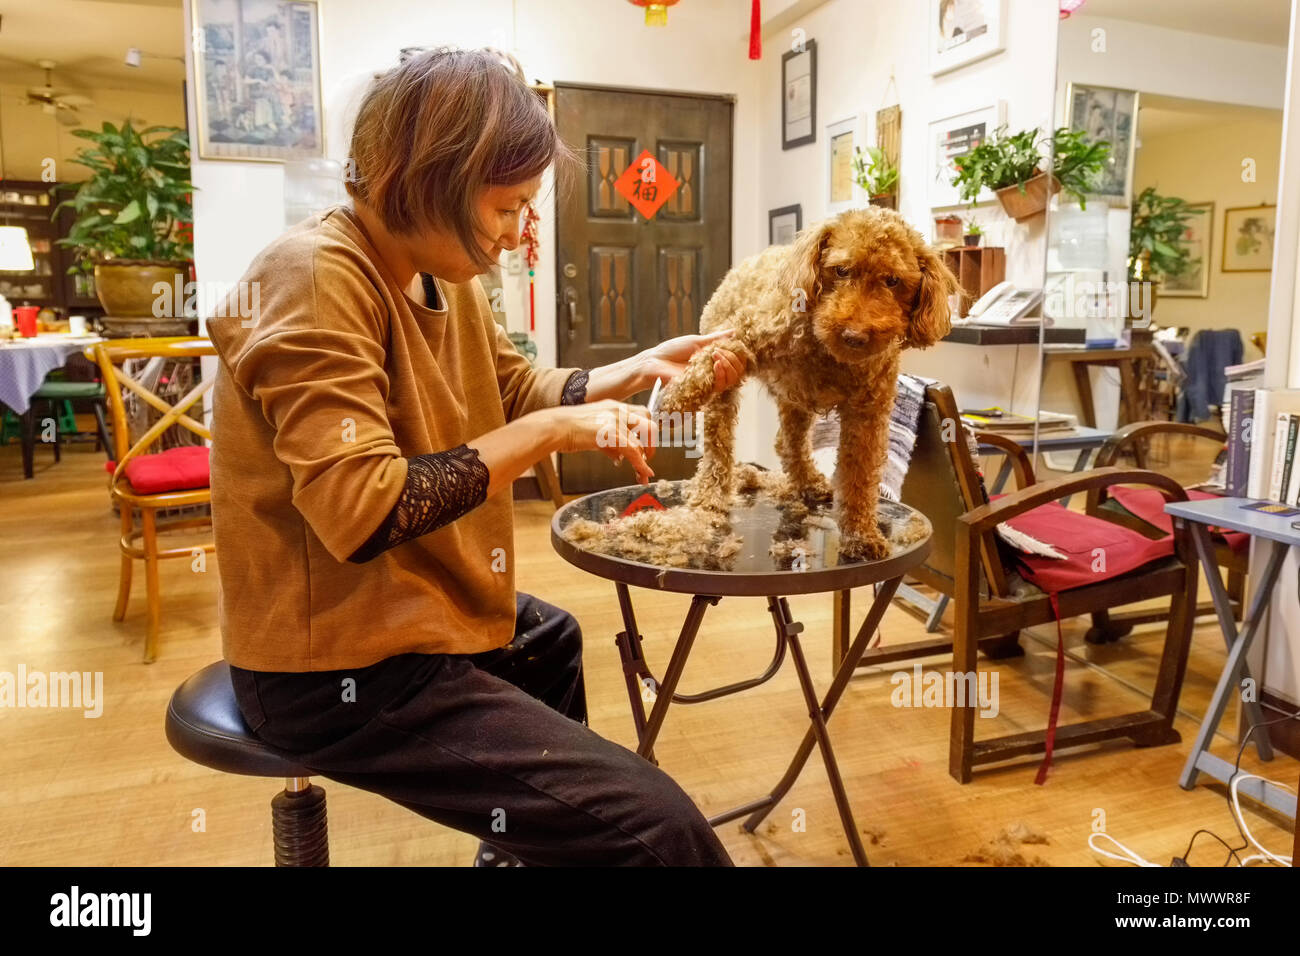 Mature Taiwanese woman hairdresser of Chinese descent grooming her pet chocolate poodle in her home and hair studio - Stock Image